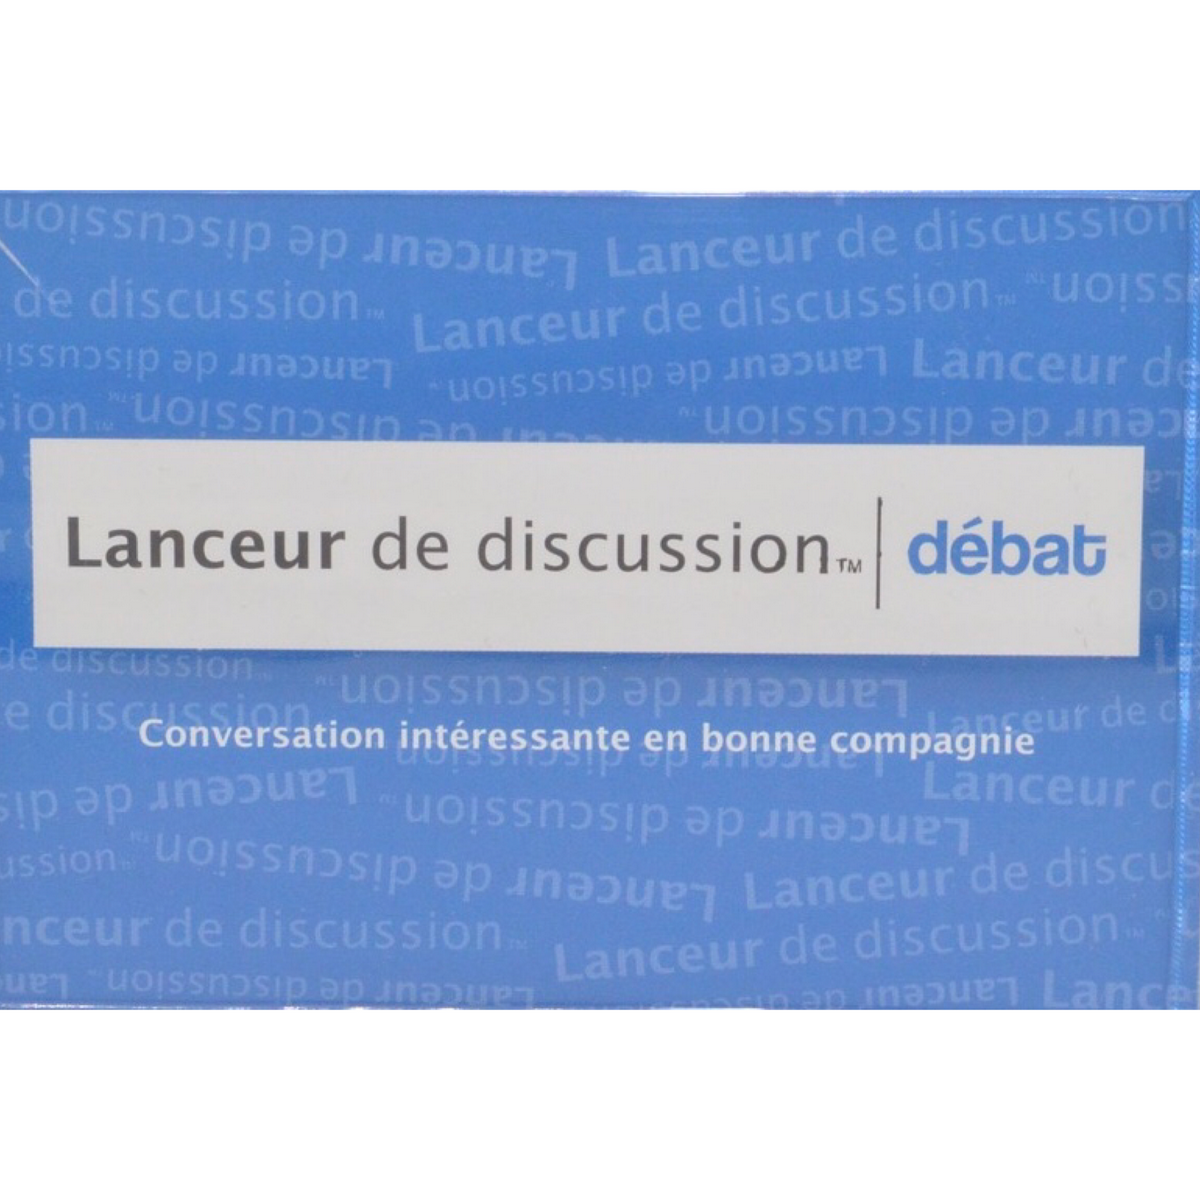 Lanceur de discussion Débat